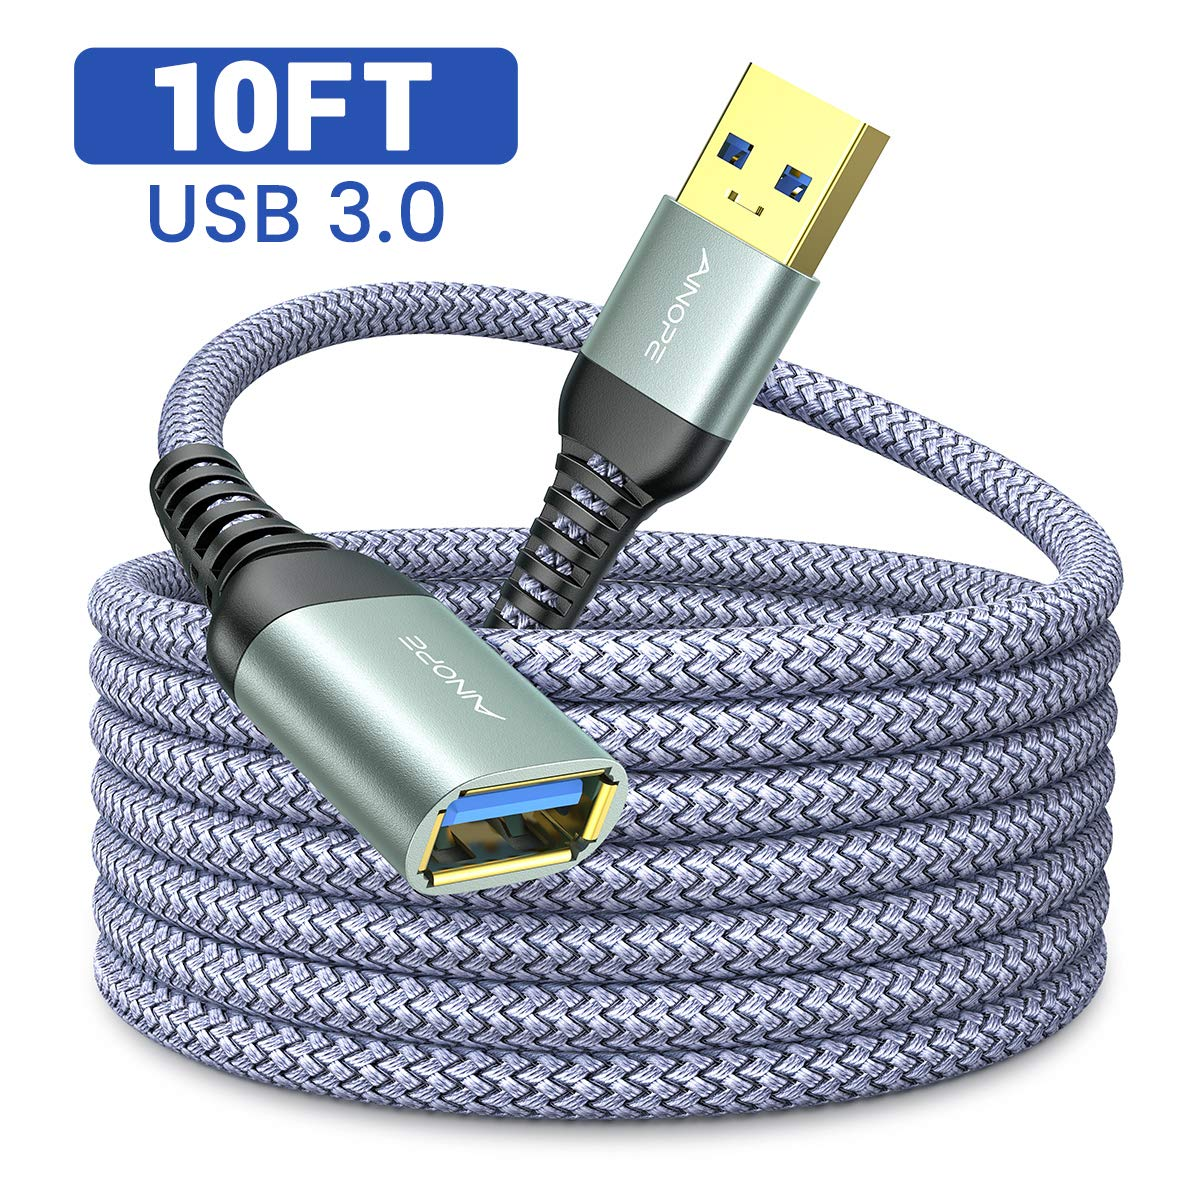 10FT USB 3.0 Extension Cable Type A Male to Female Extension Cord AINOPE Durable Braided Material High Data Transfer Compatible with USB Keyboard,Mouse,Flash Drive, Hard Drive,Printer